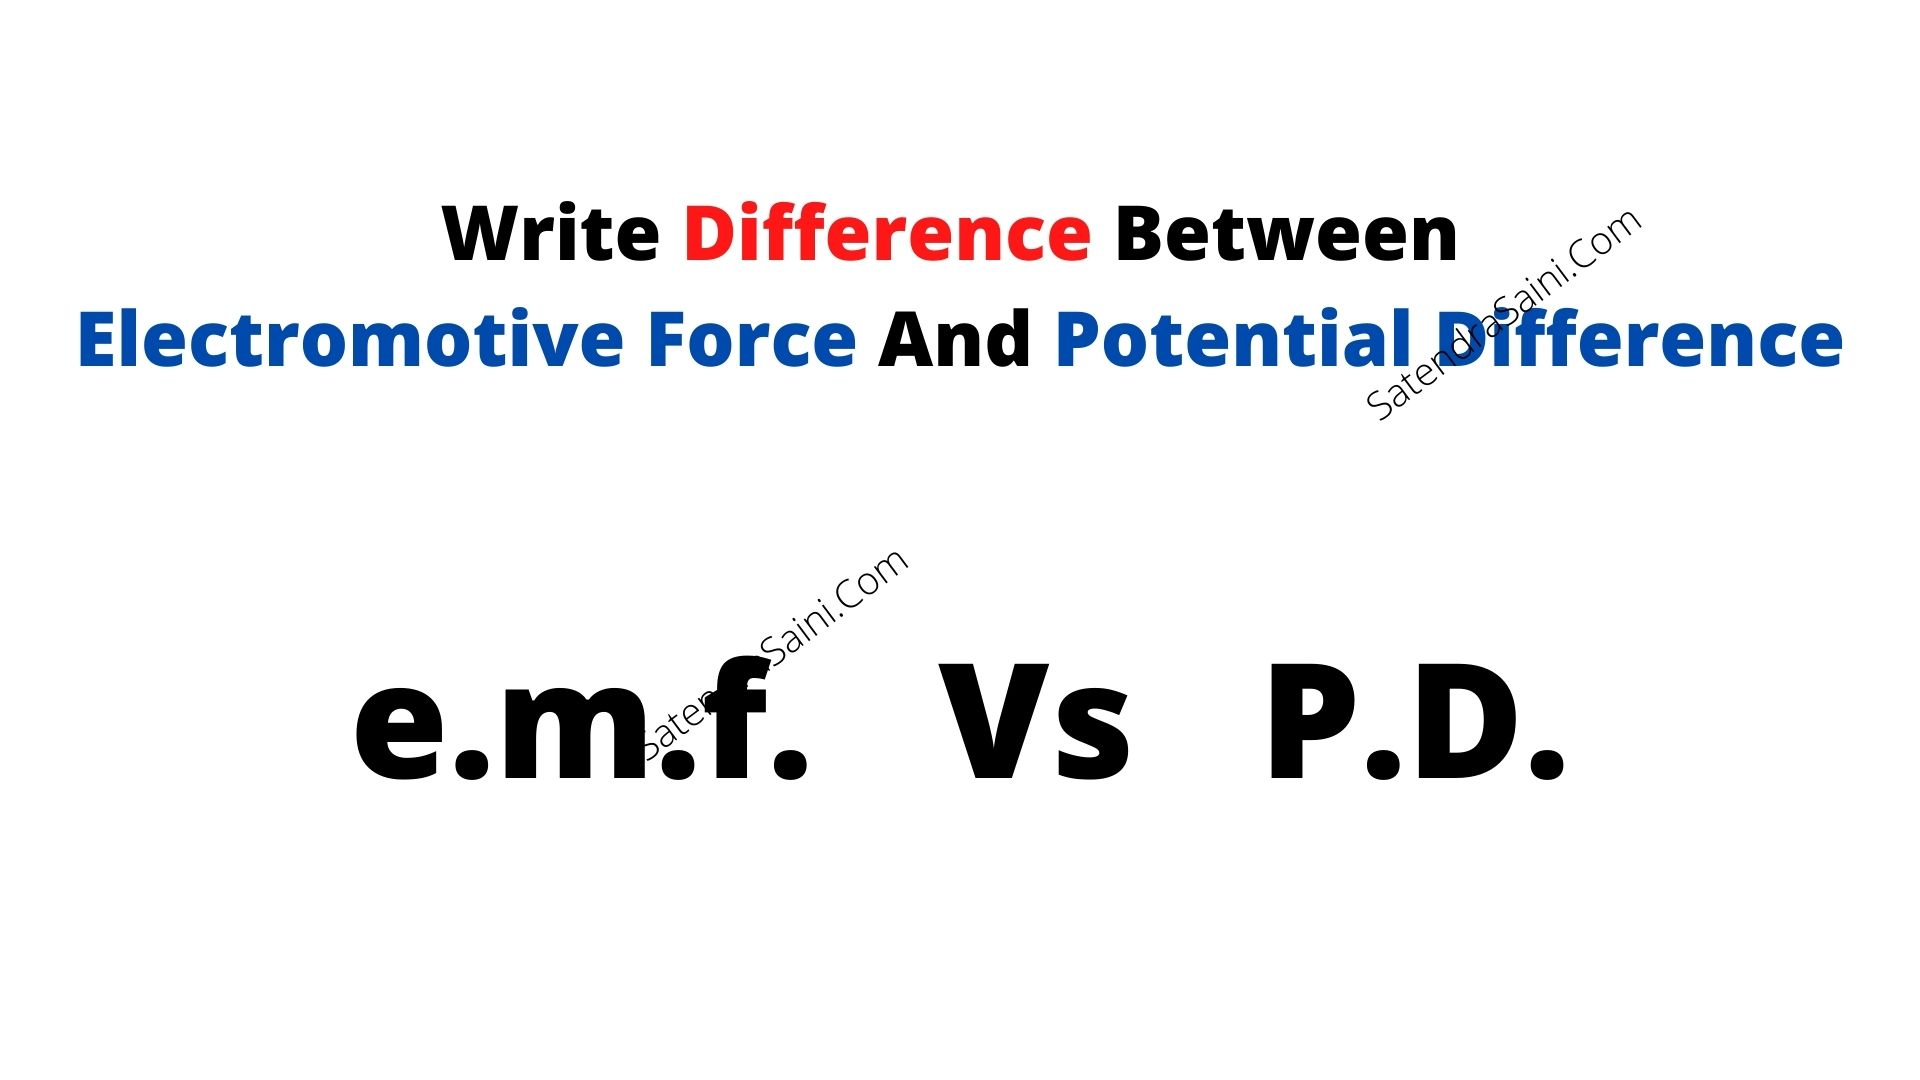 Write Difference Between Electromotive Force And Potential Difference